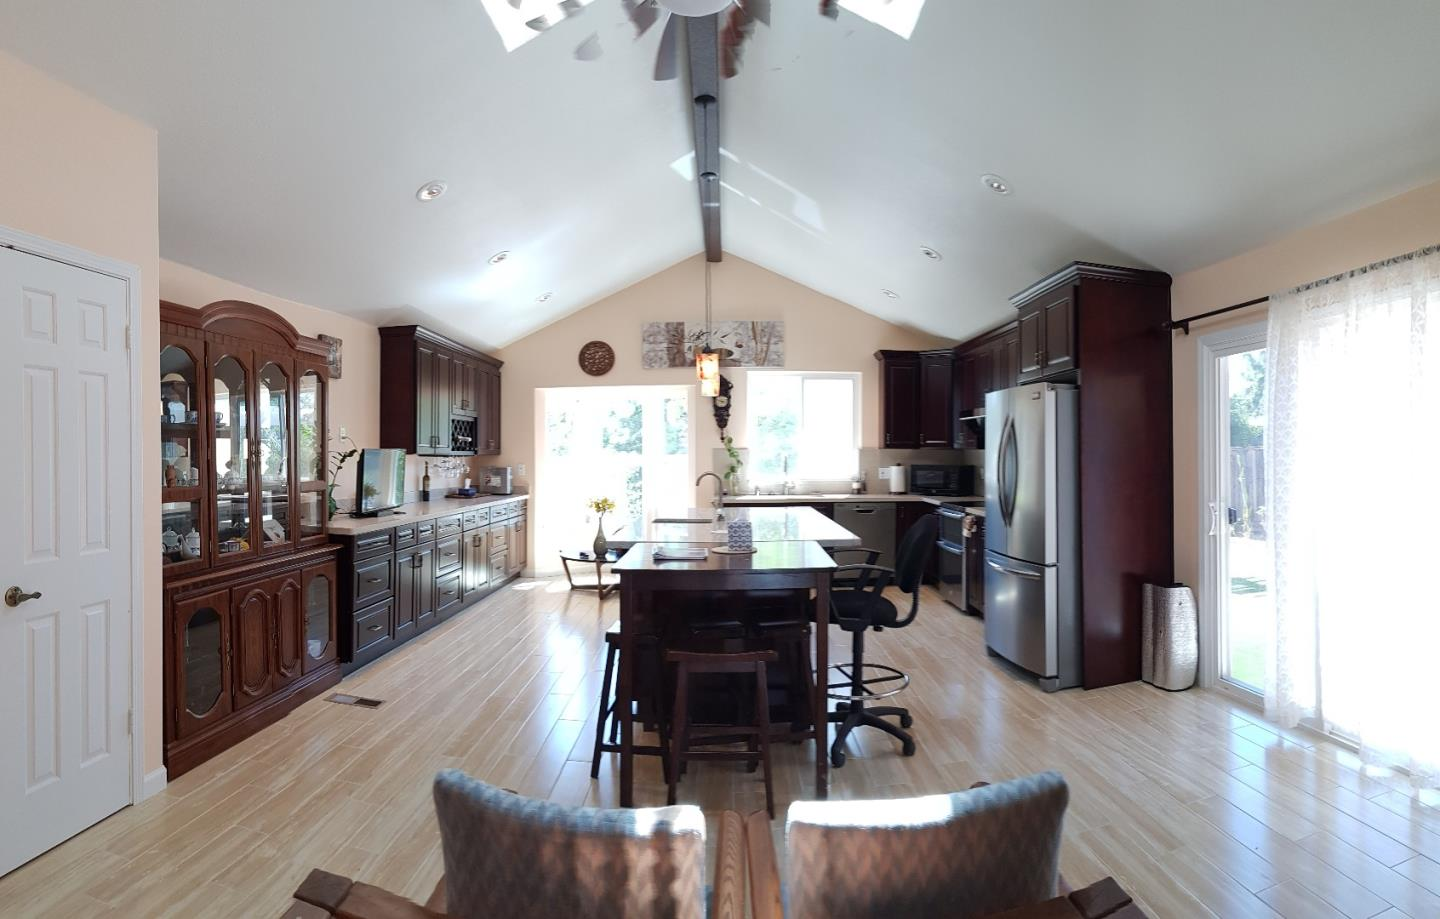 Additional photo for property listing at 3514 Ramstad Drive  San Jose, カリフォルニア 95127 アメリカ合衆国